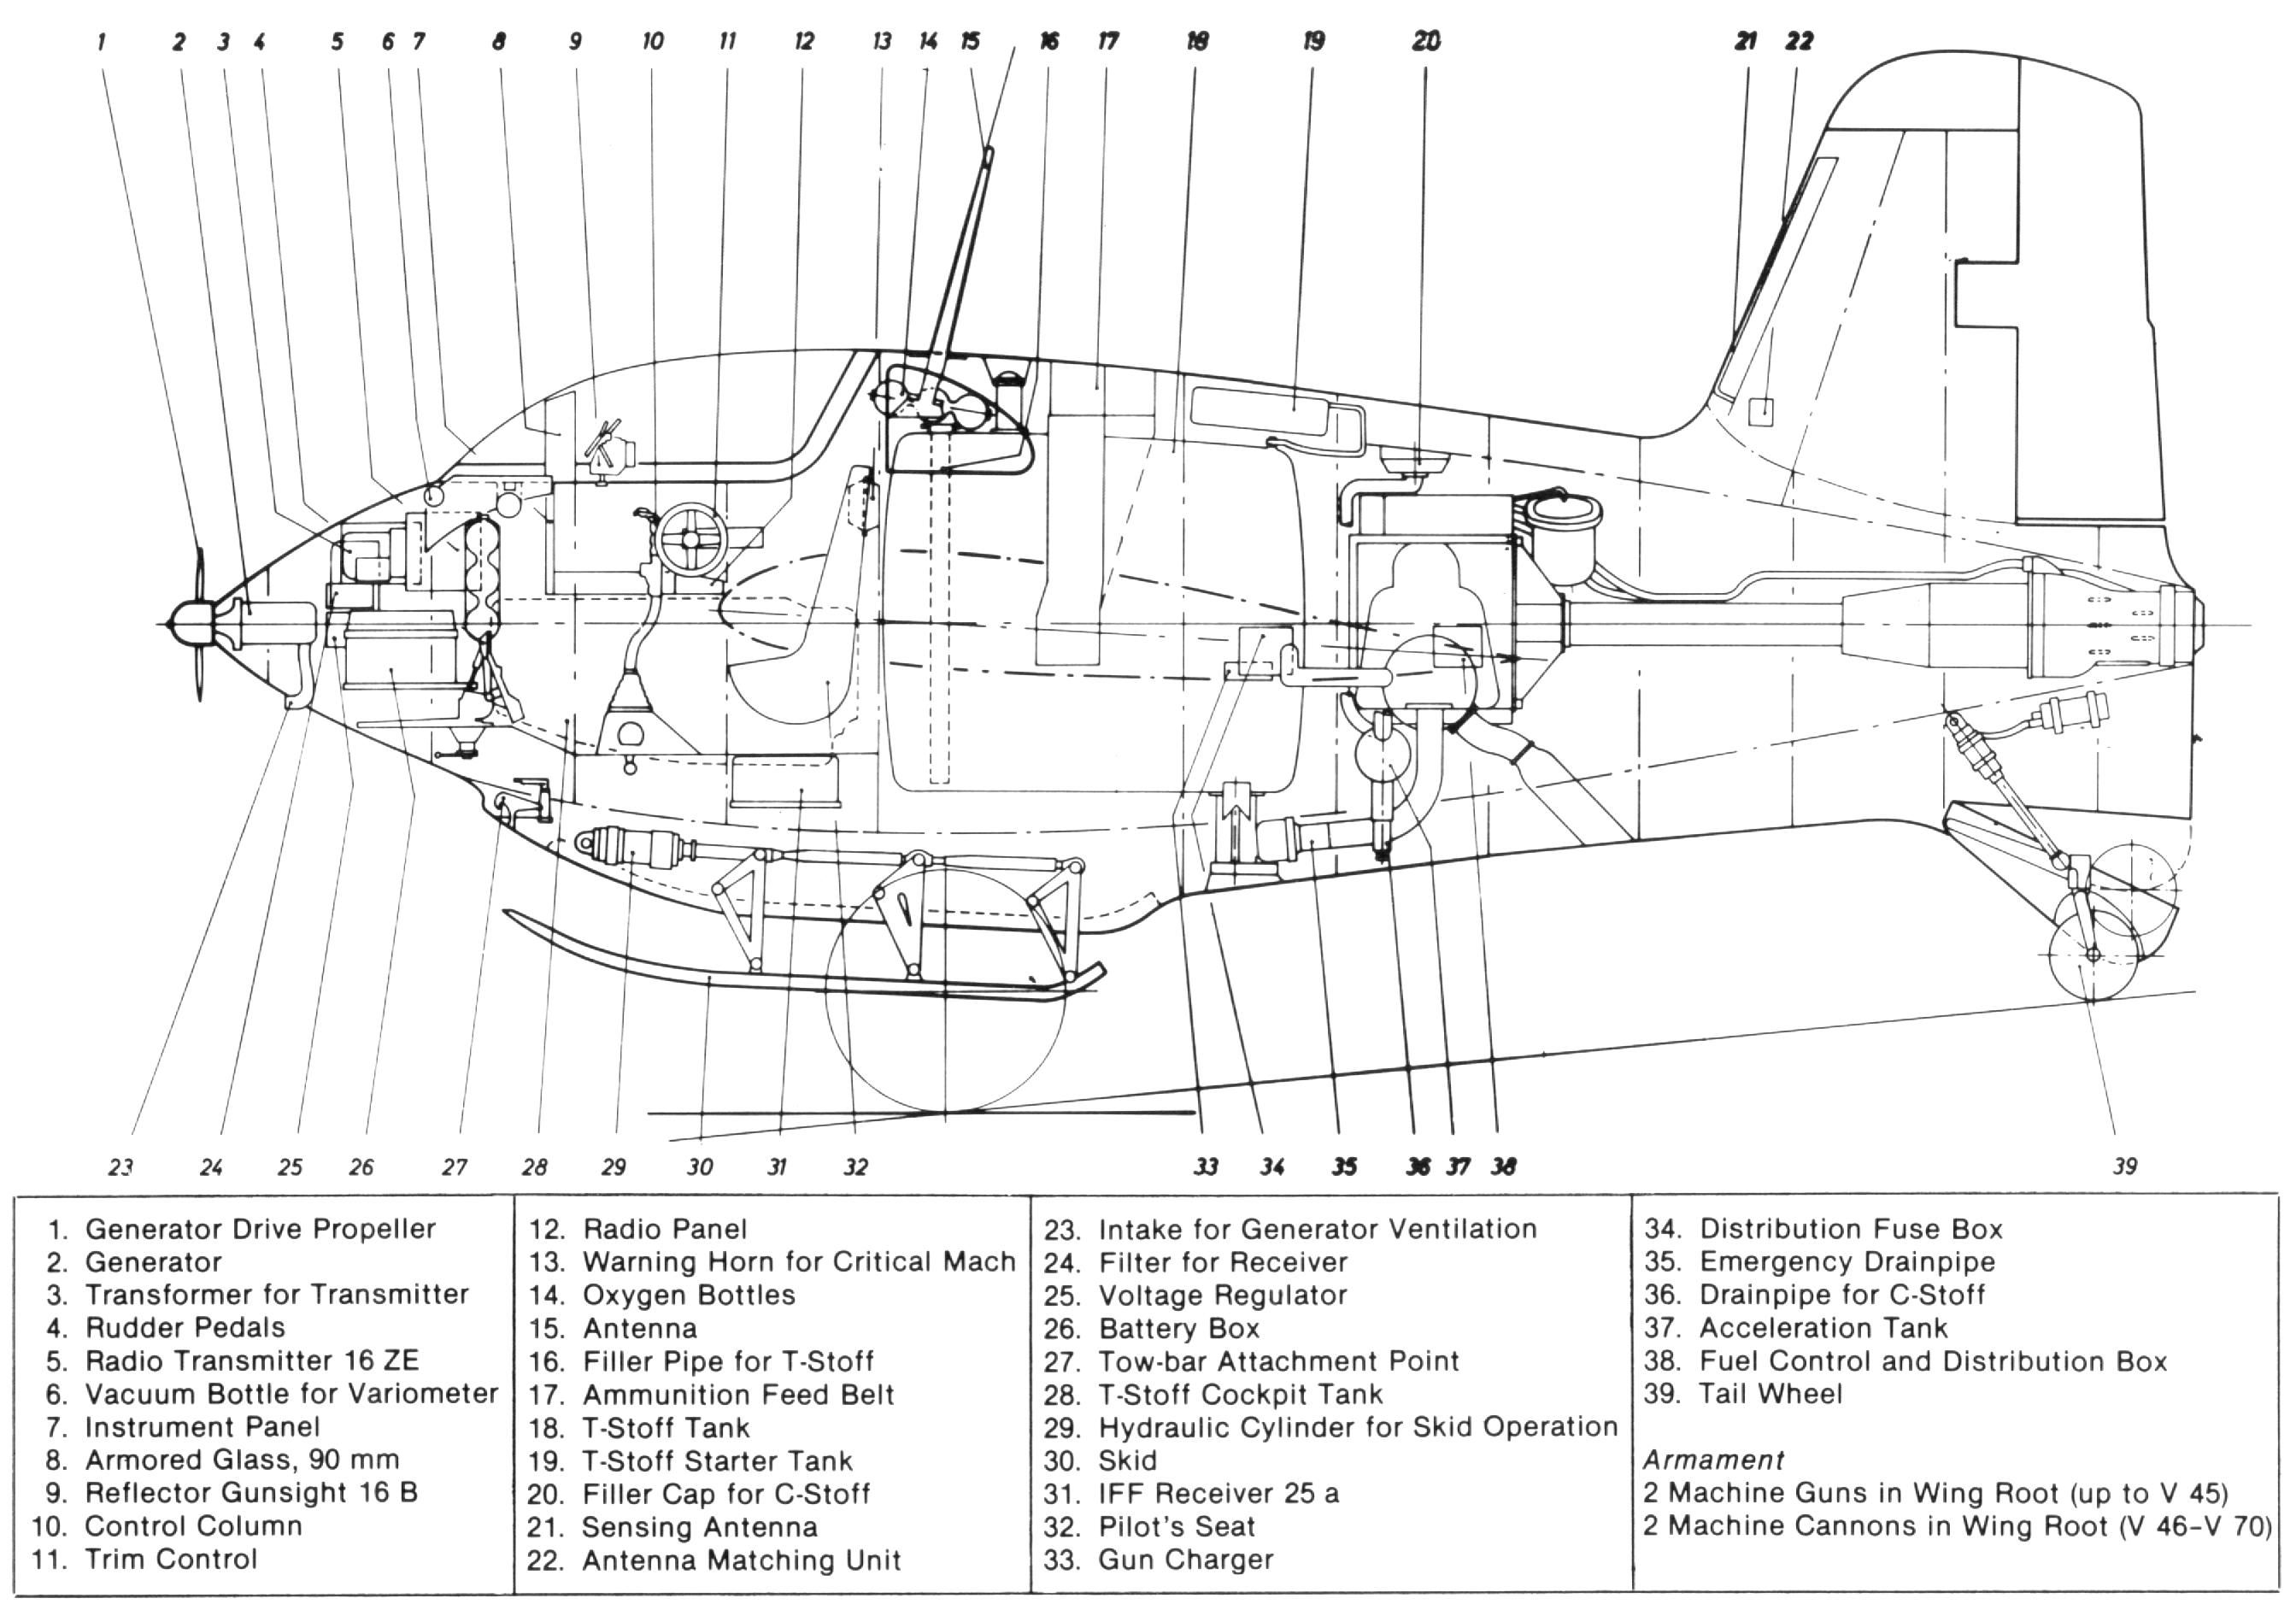 Messerschmitt Me 163 Cross Section